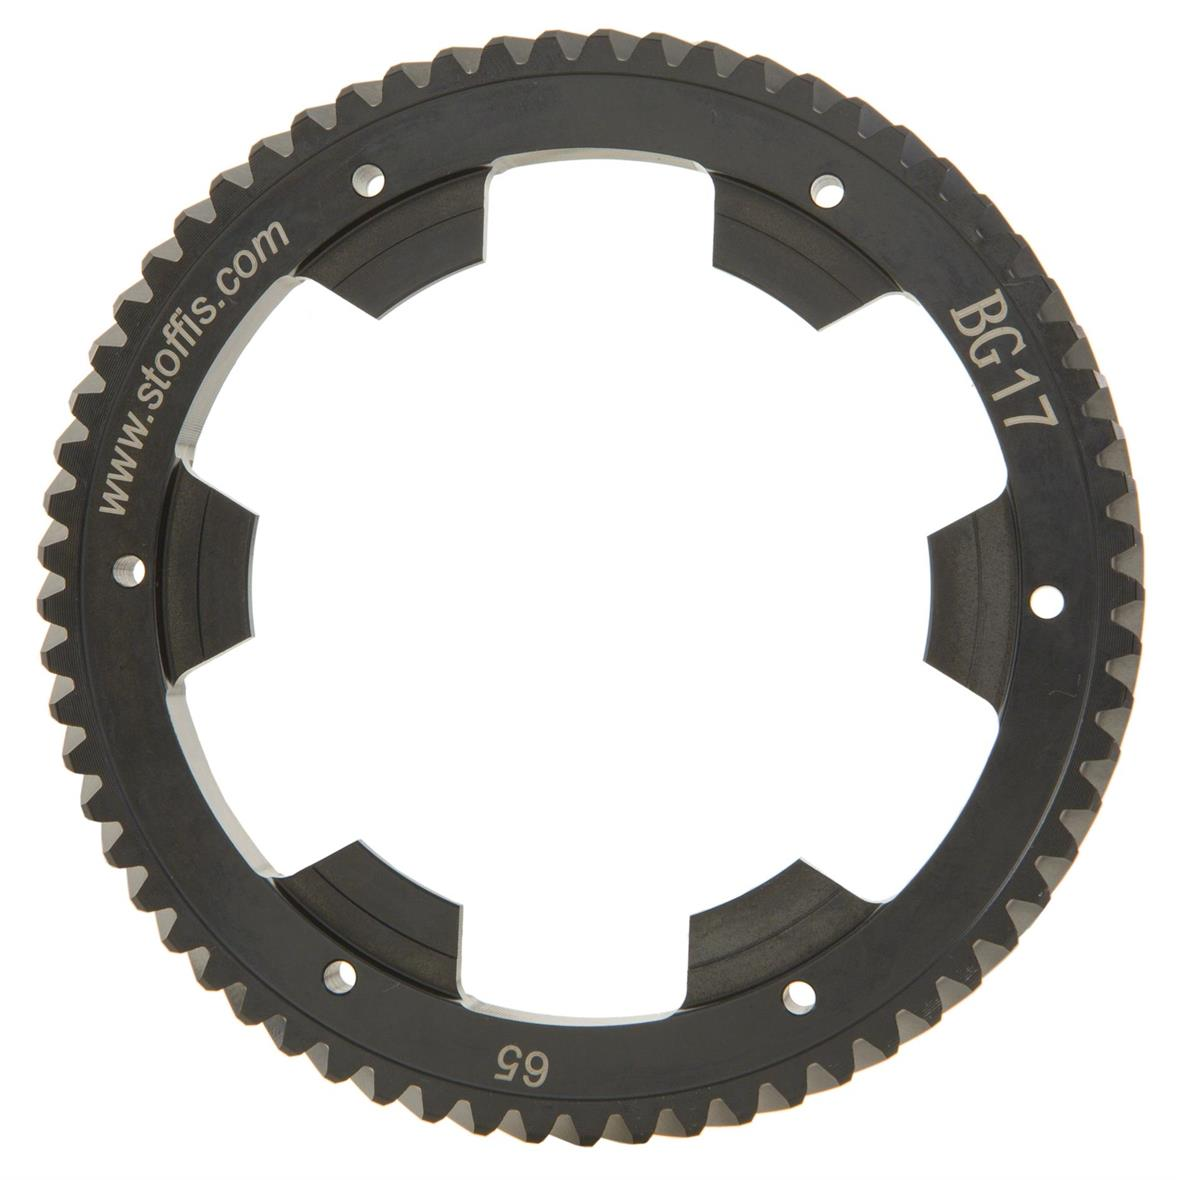 Product Image for 'Primary Driven Gear 65 teeth input shaft SERIE PRO by STOFFI'STitle'